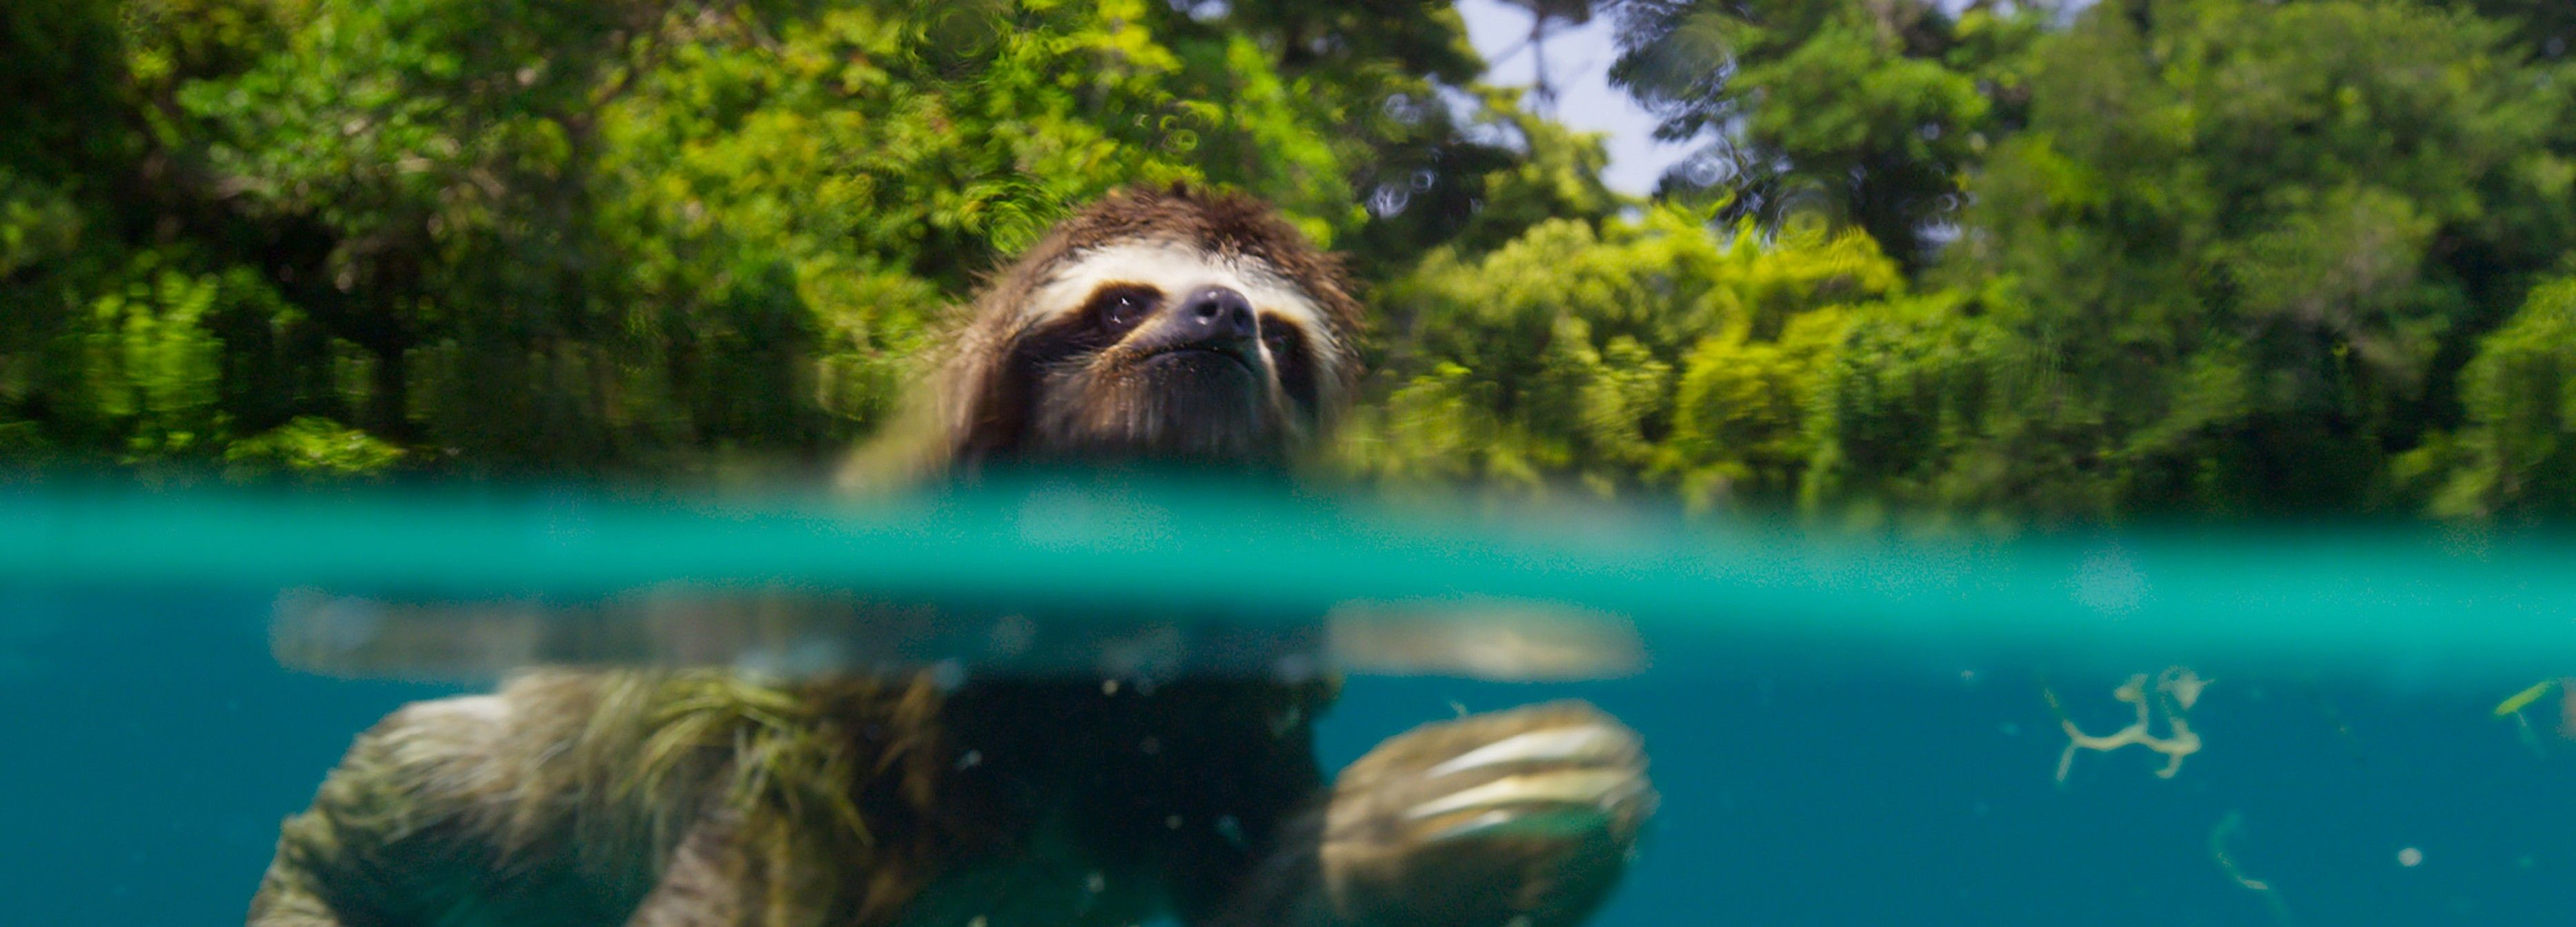 A new study shows watching nature documentaries can make you happier blog for BBC Earth